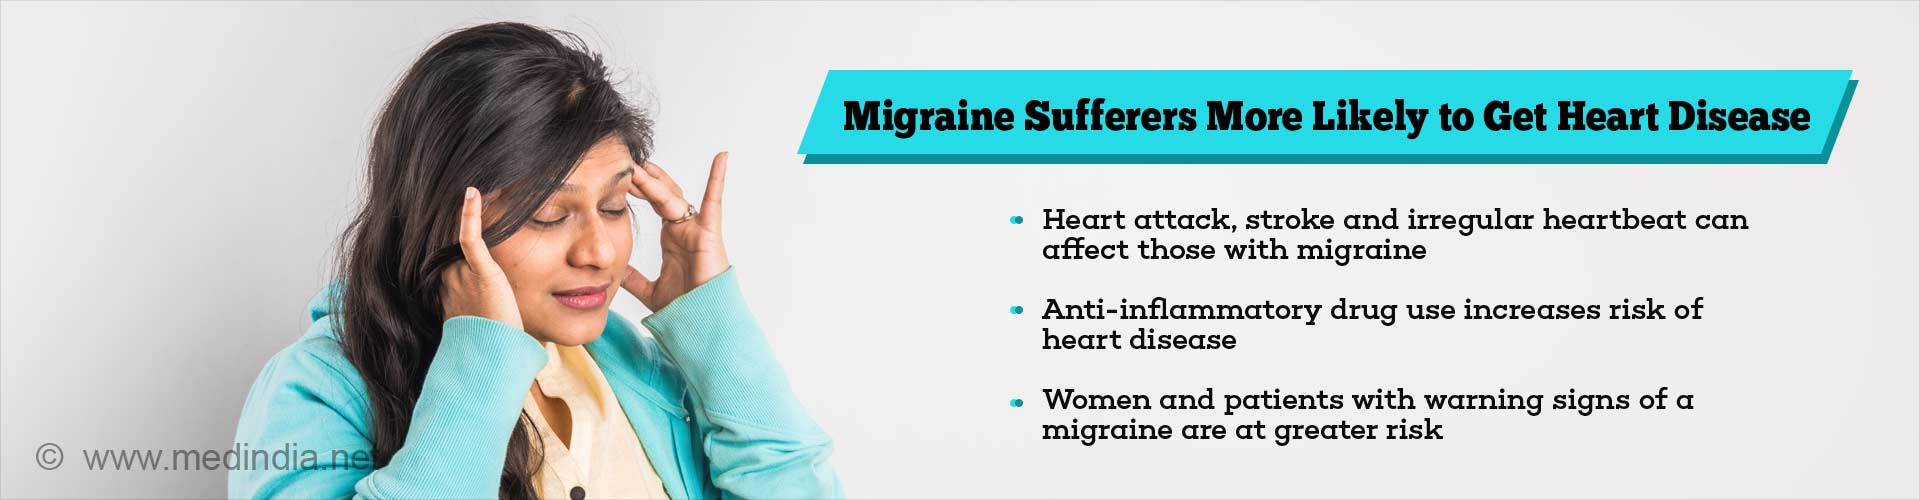 migraine sufferers more likely to get heart disease